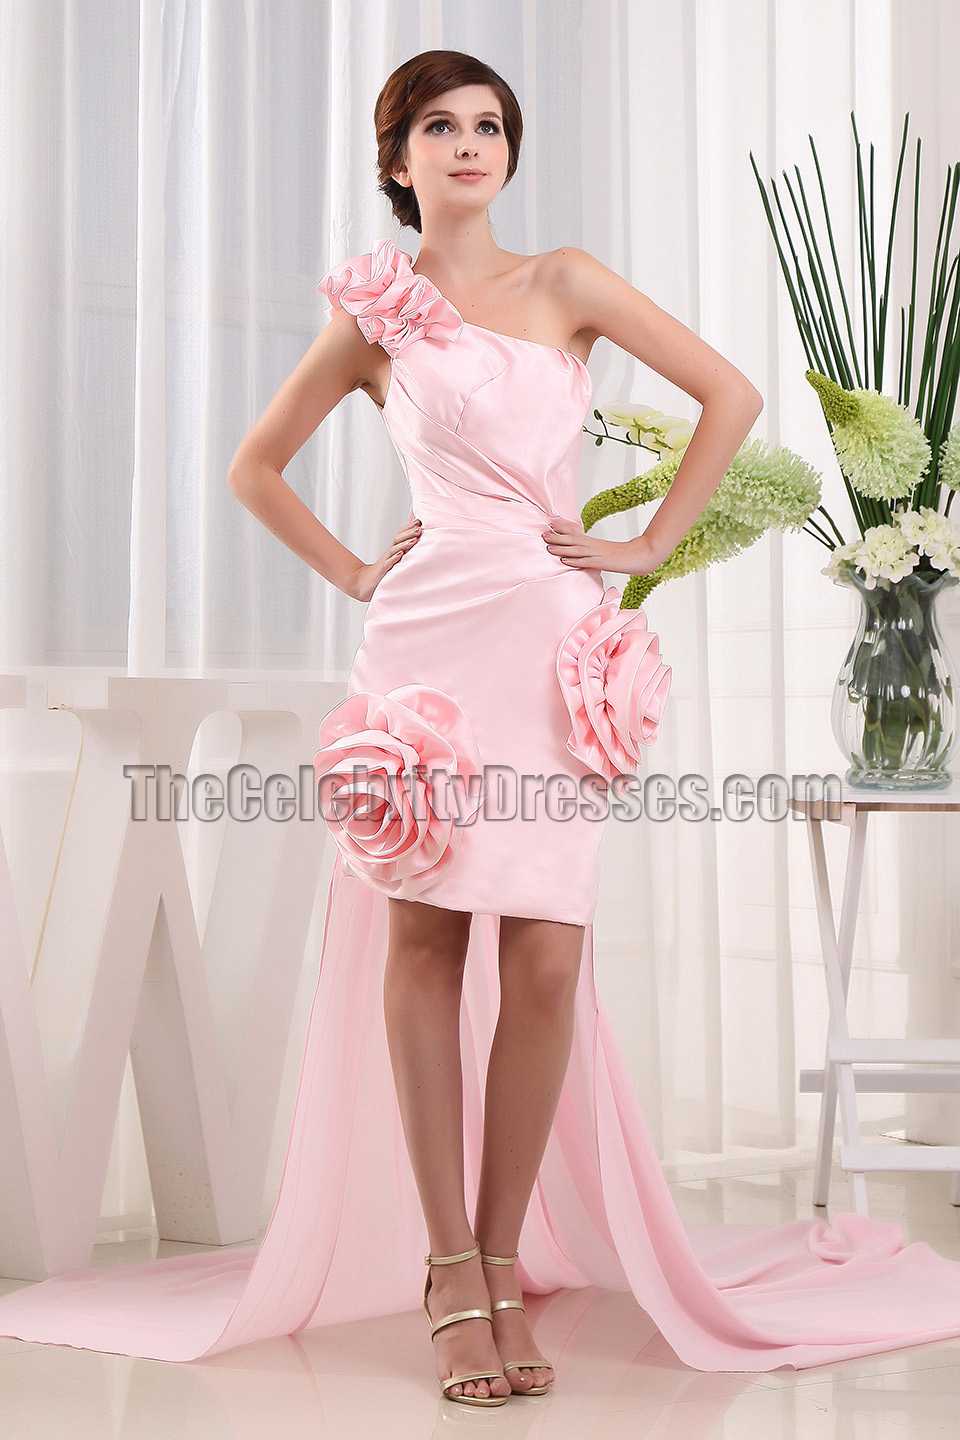 Pearl Pink One Shoulder Party Prom Dresses Thecelebritydresses